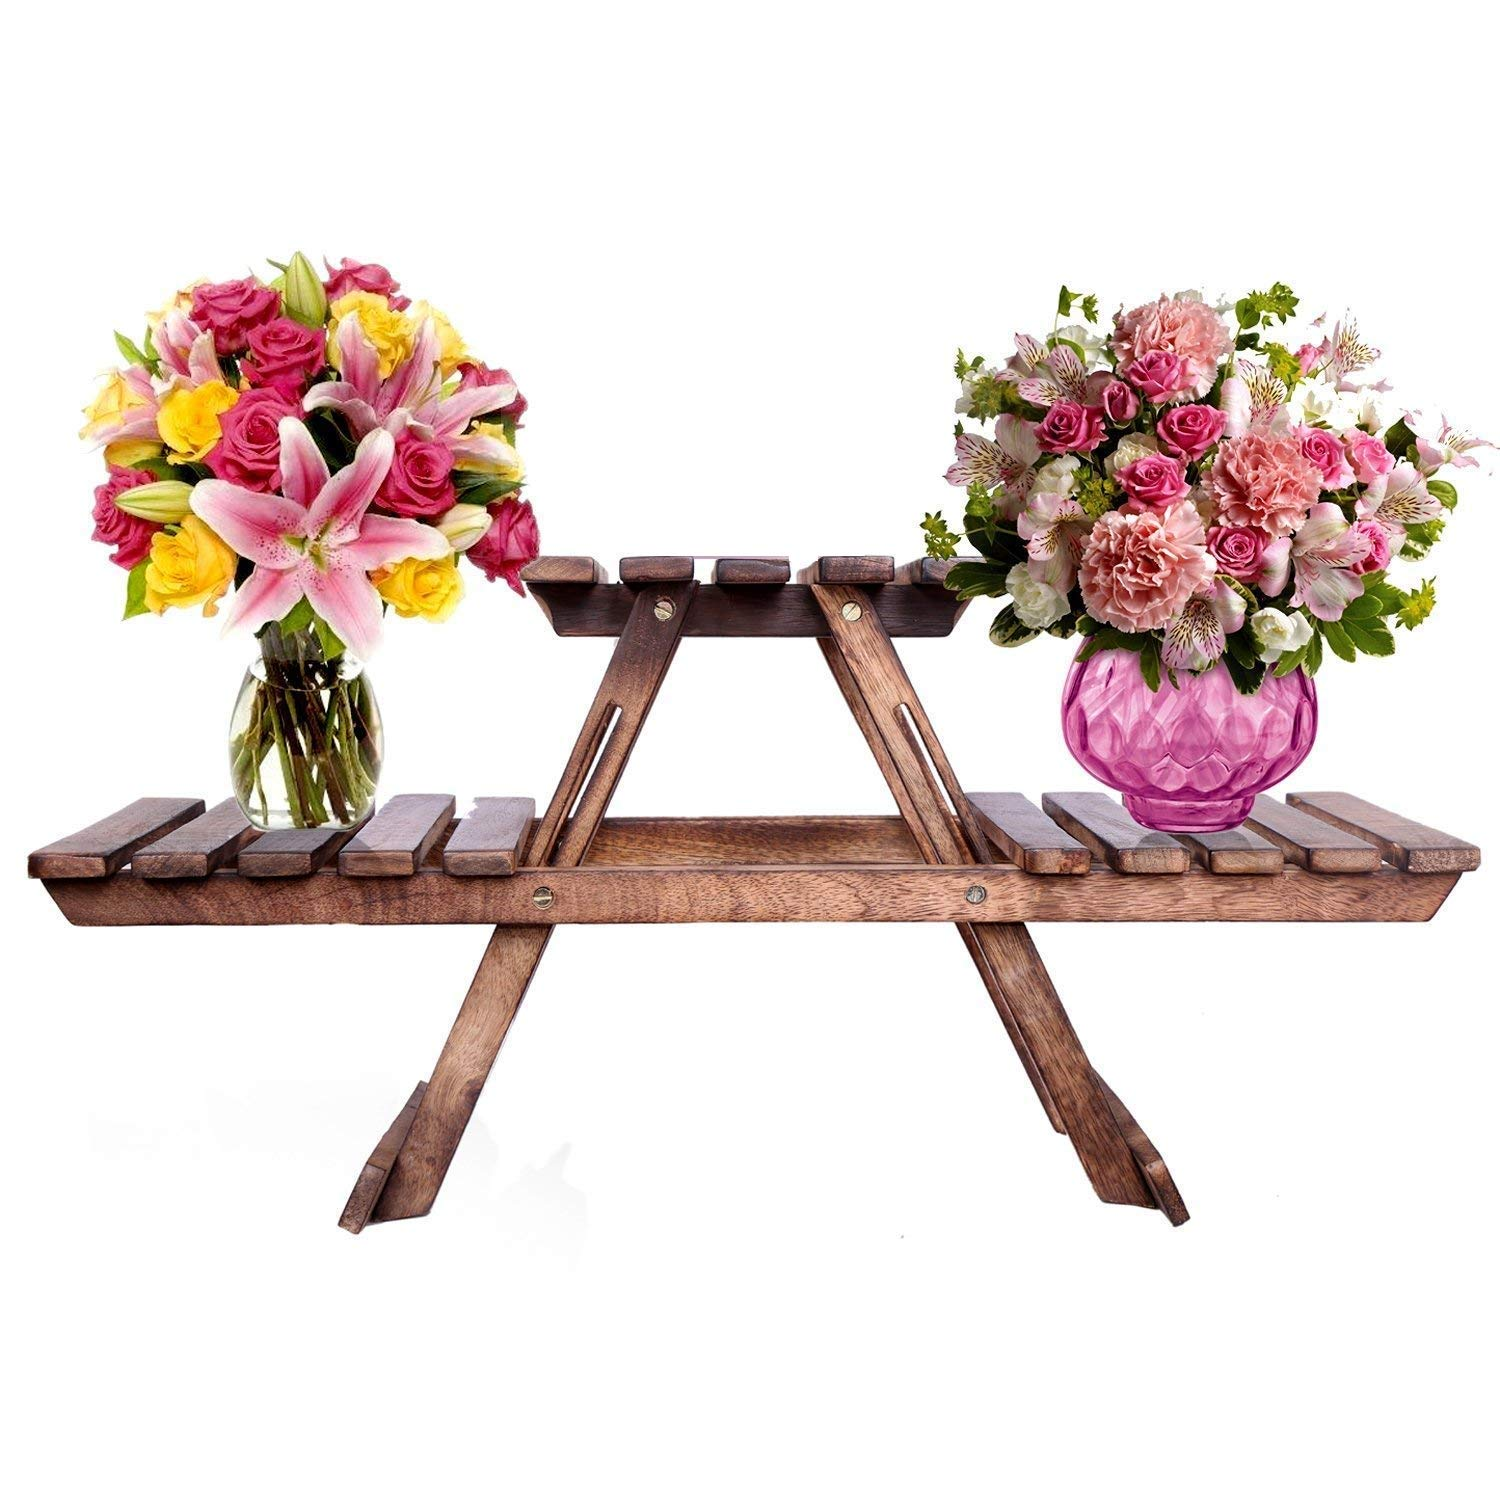 Hogal Planter Stand Table/Wooden Stool/Flower Pot Stand, Standard Size, Brown Easy to Handle